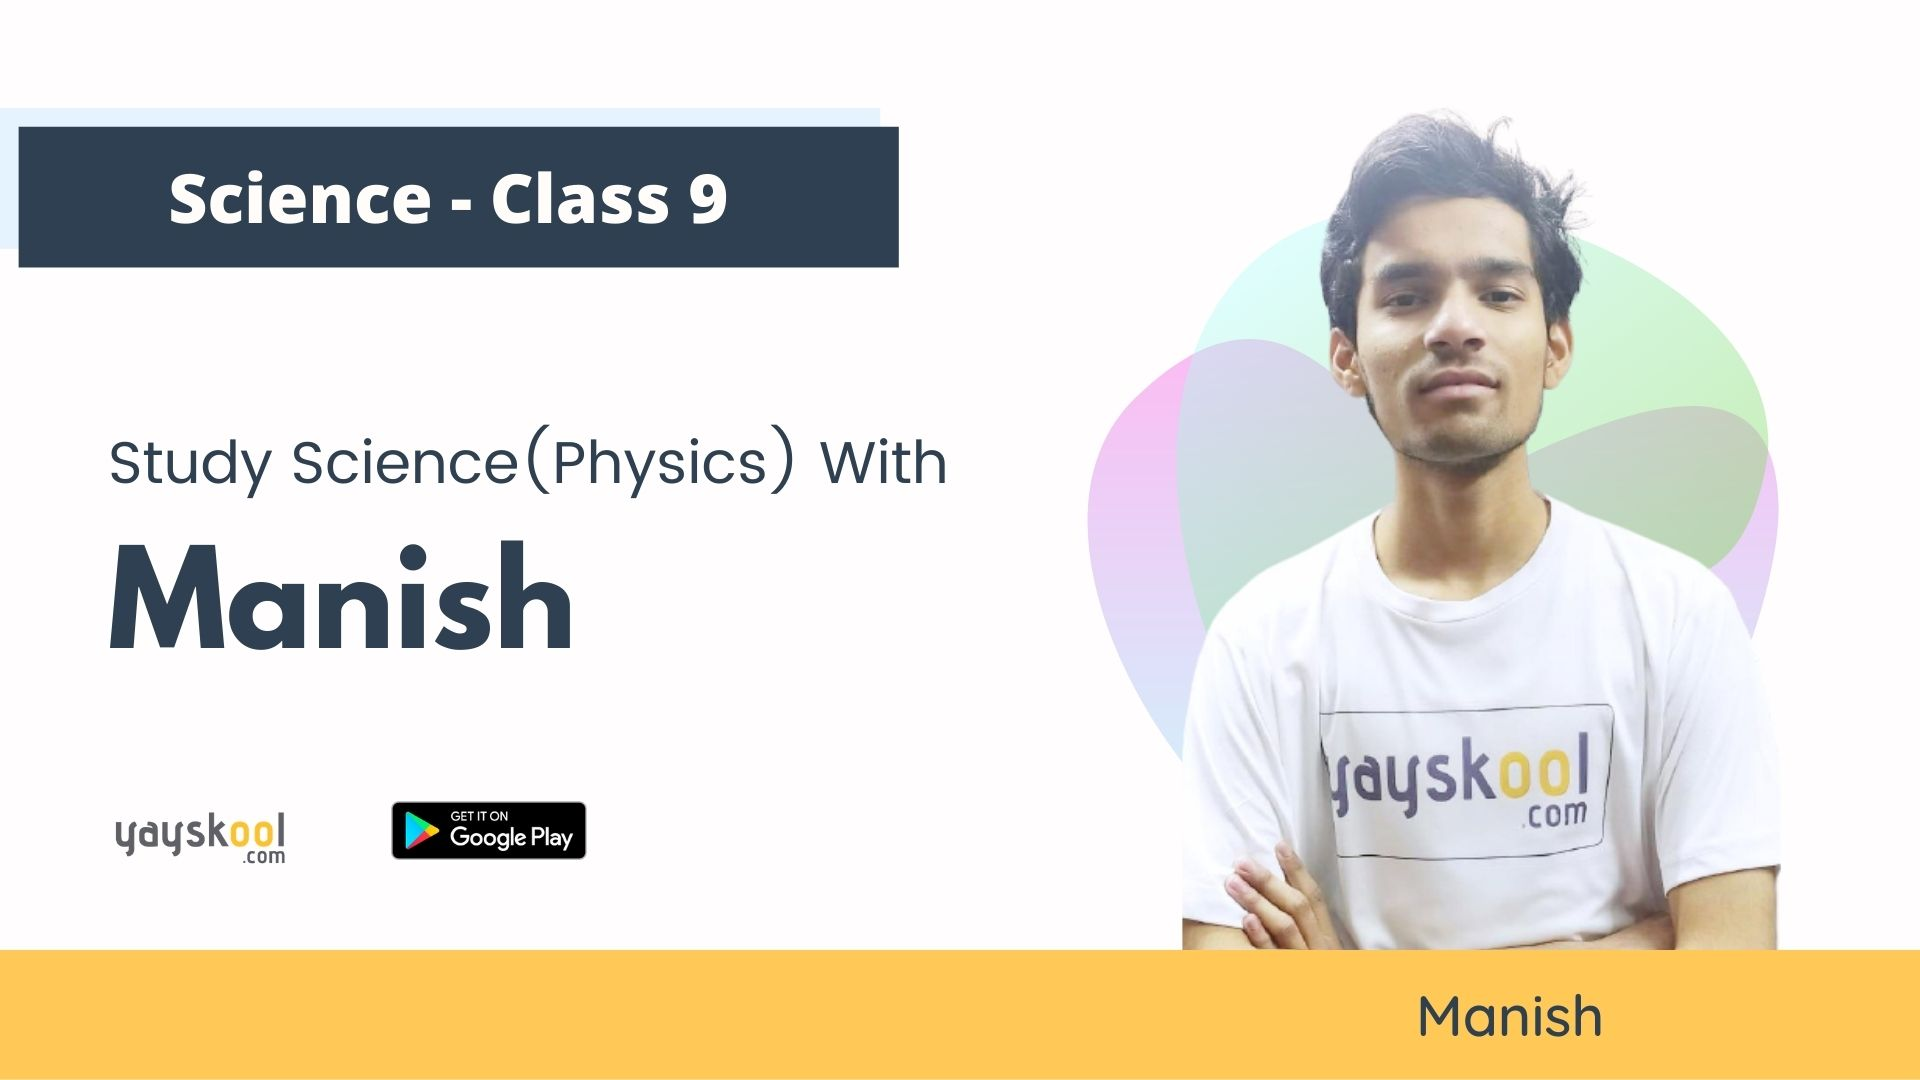 sciencephysicscourseforclass09-studywithmanish